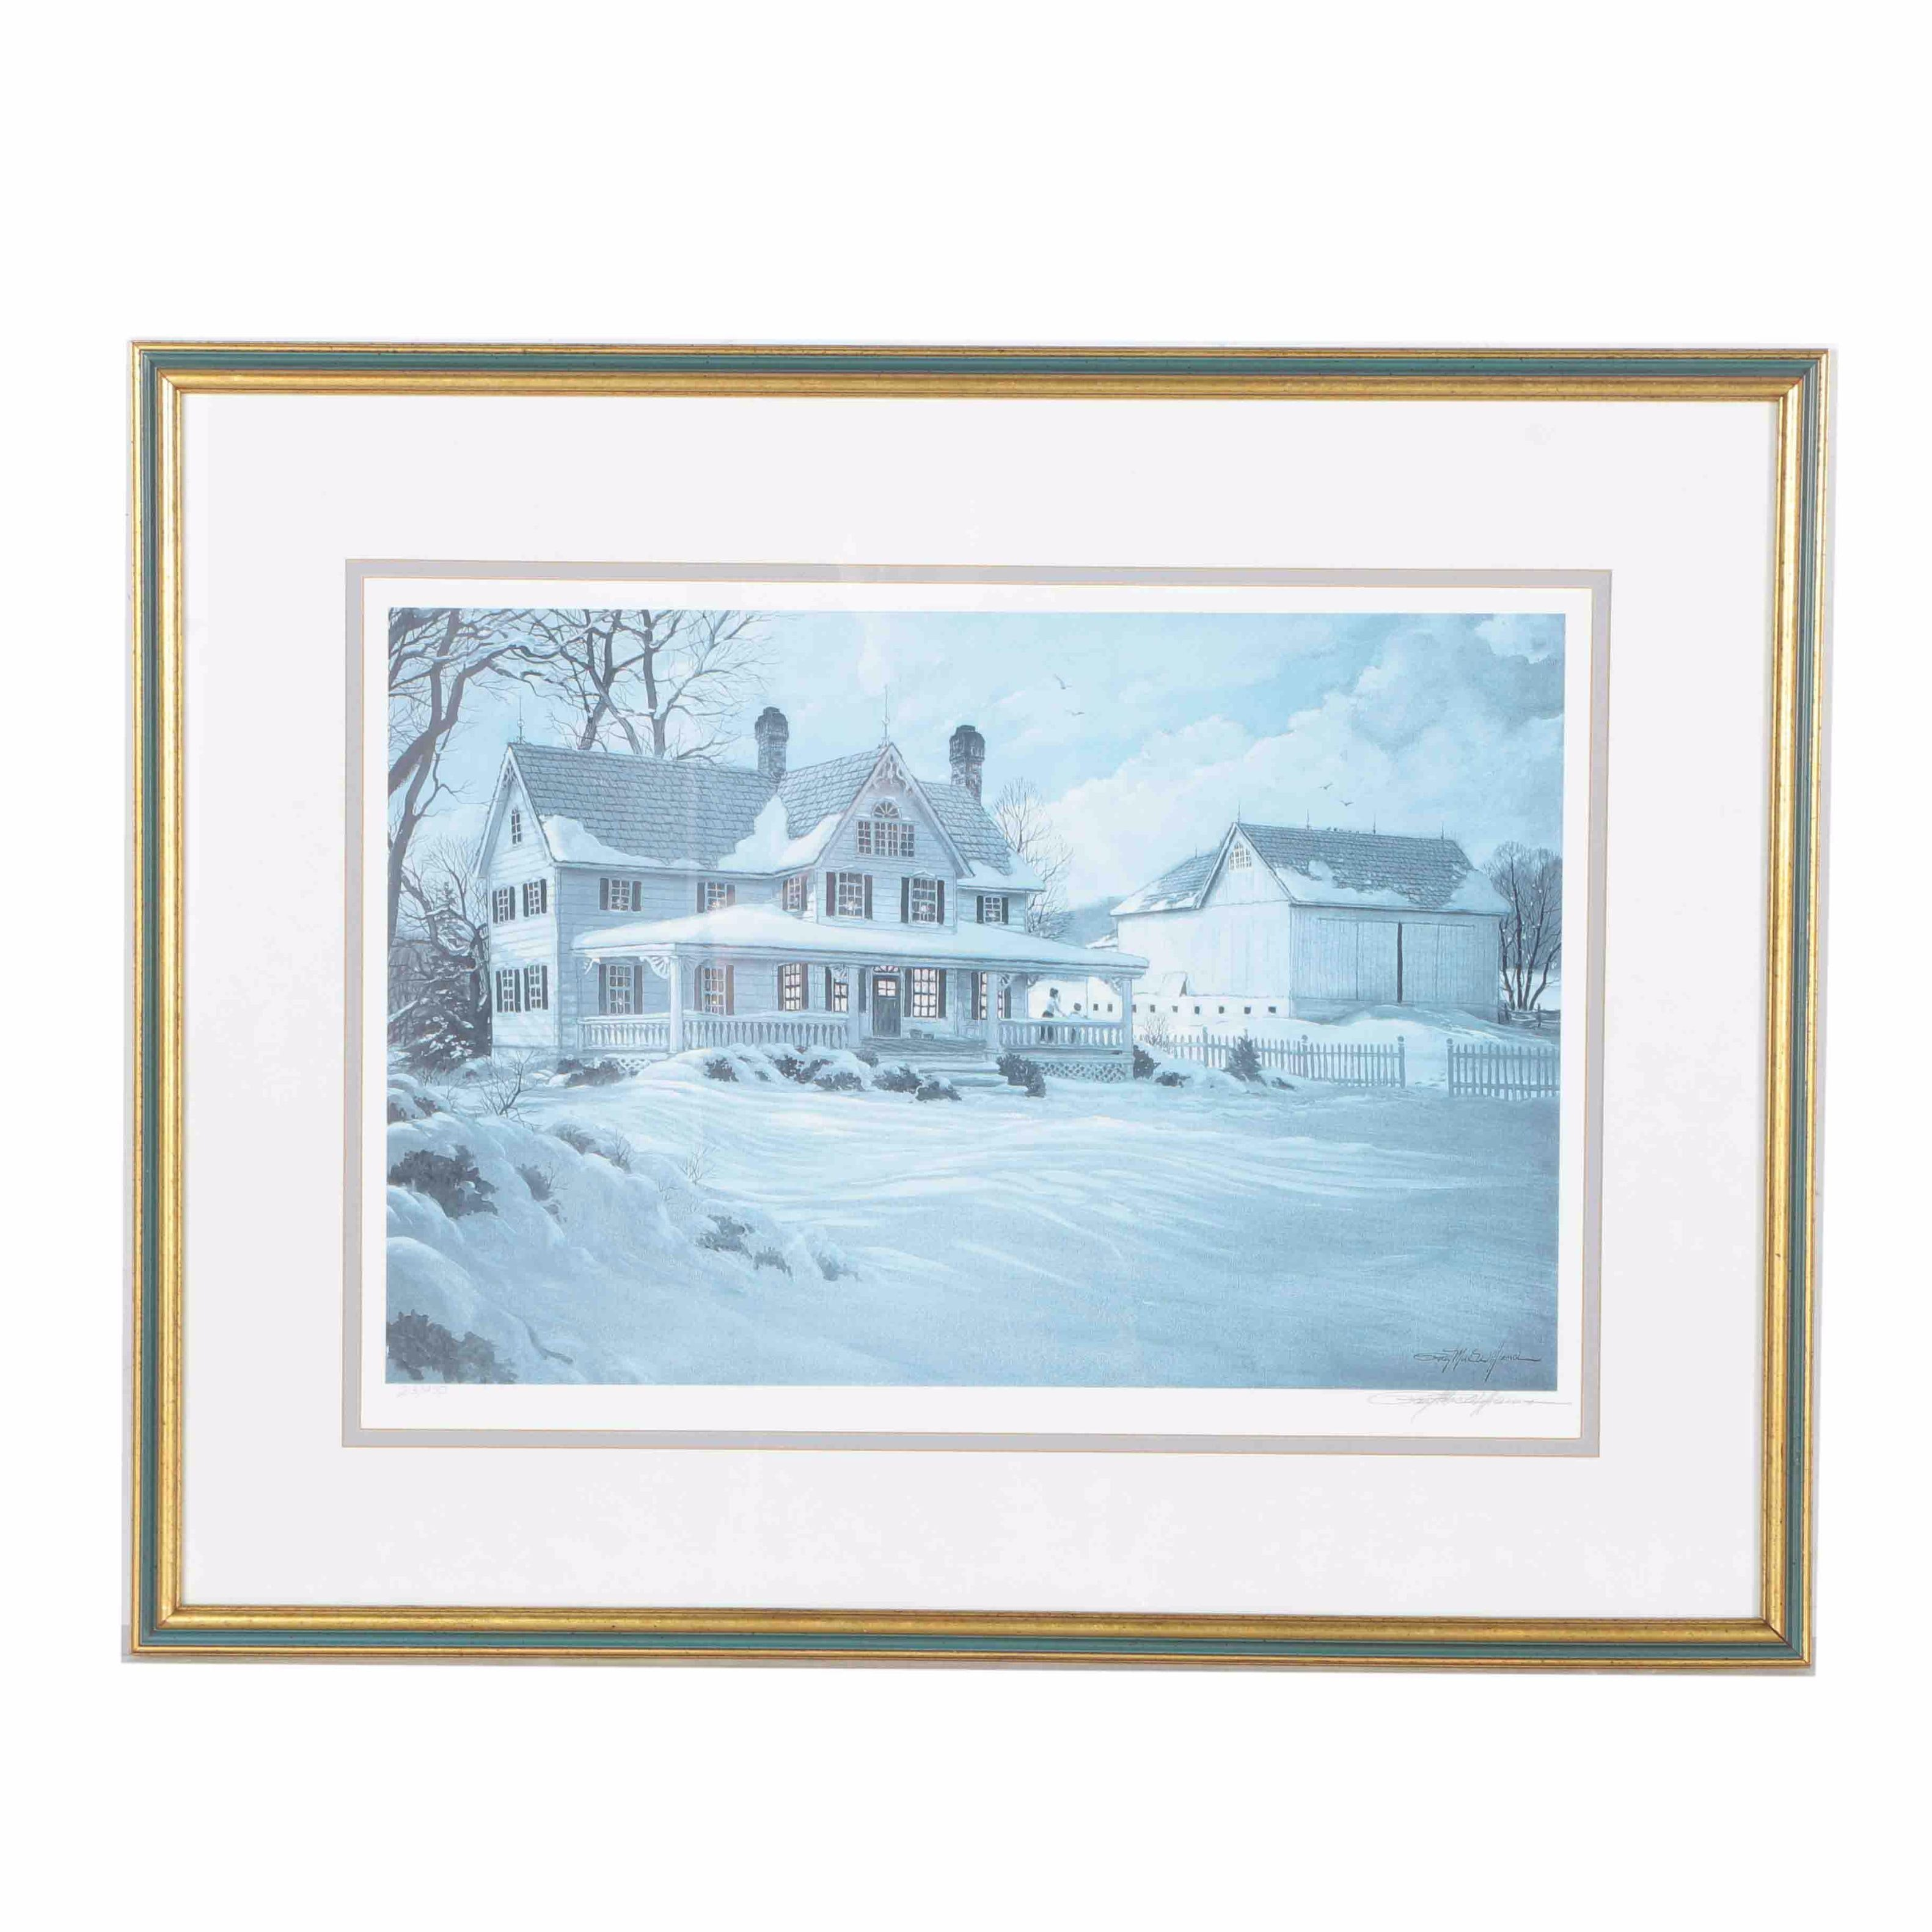 Ray MacWilliams Limited Edition Offset Lithograph of a Winter Landscape